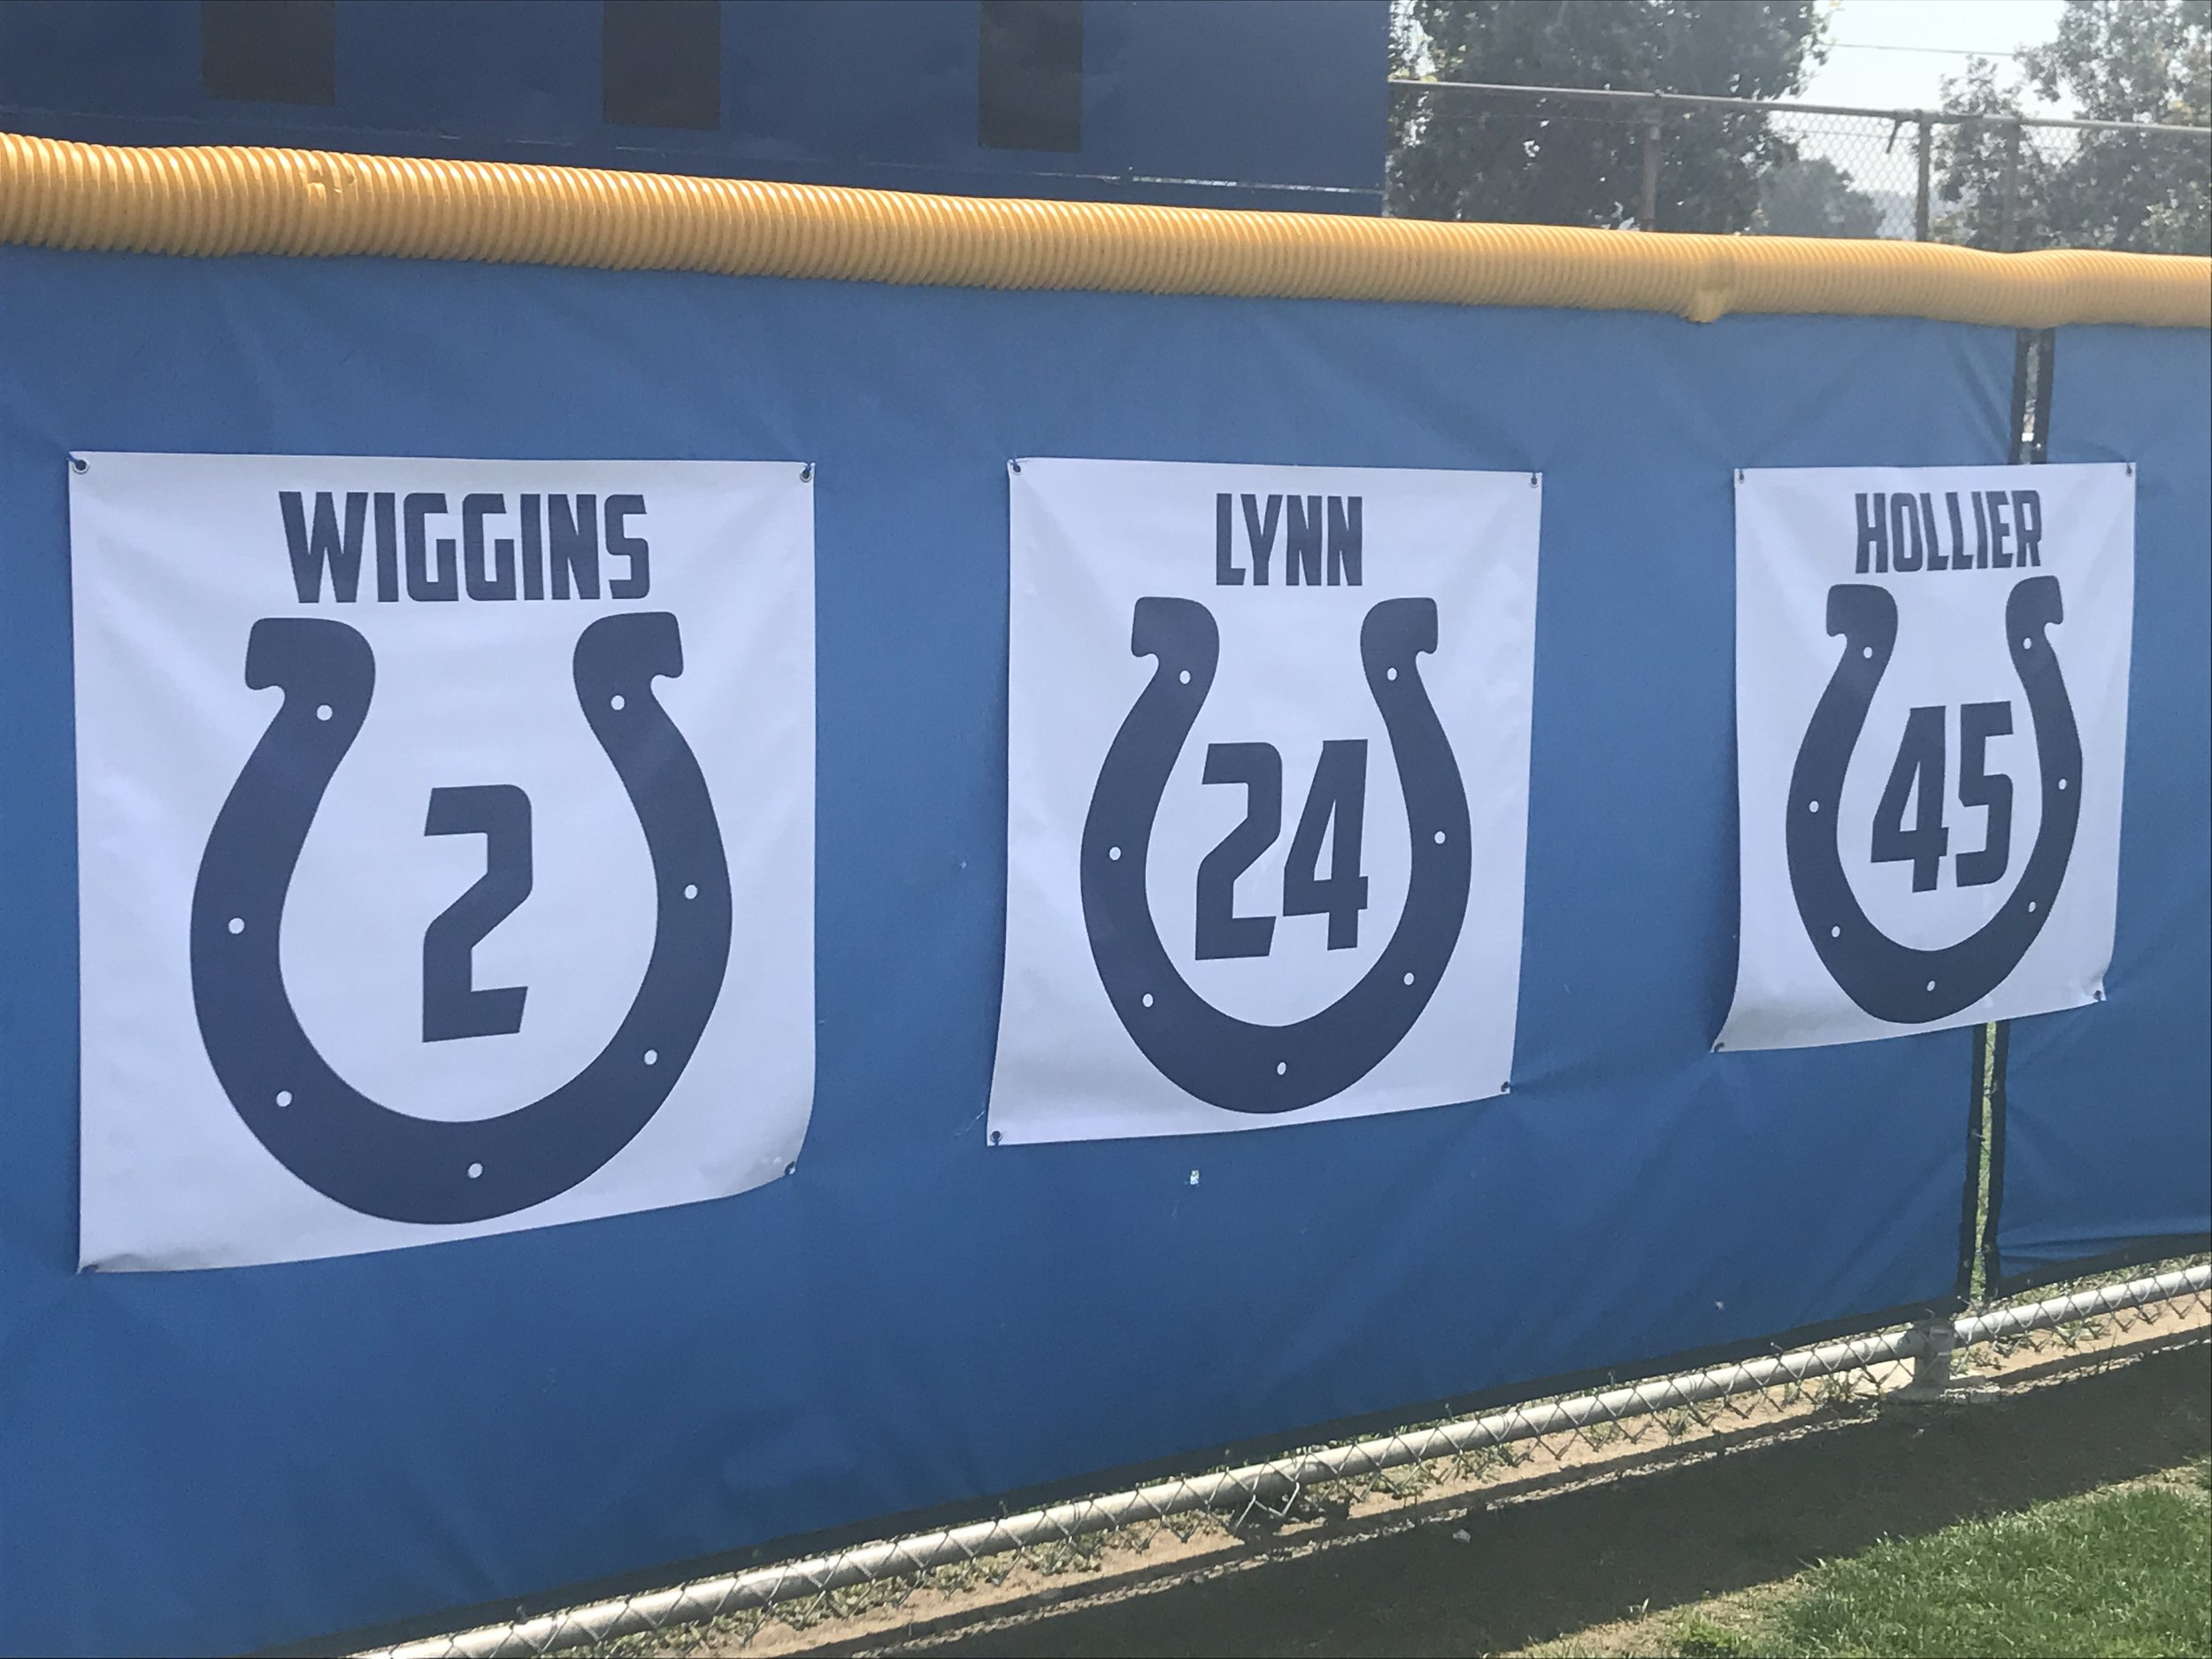 The legacies of Warren Hollier and Alan Wiggins will forever be enshrined together at John Muir HS